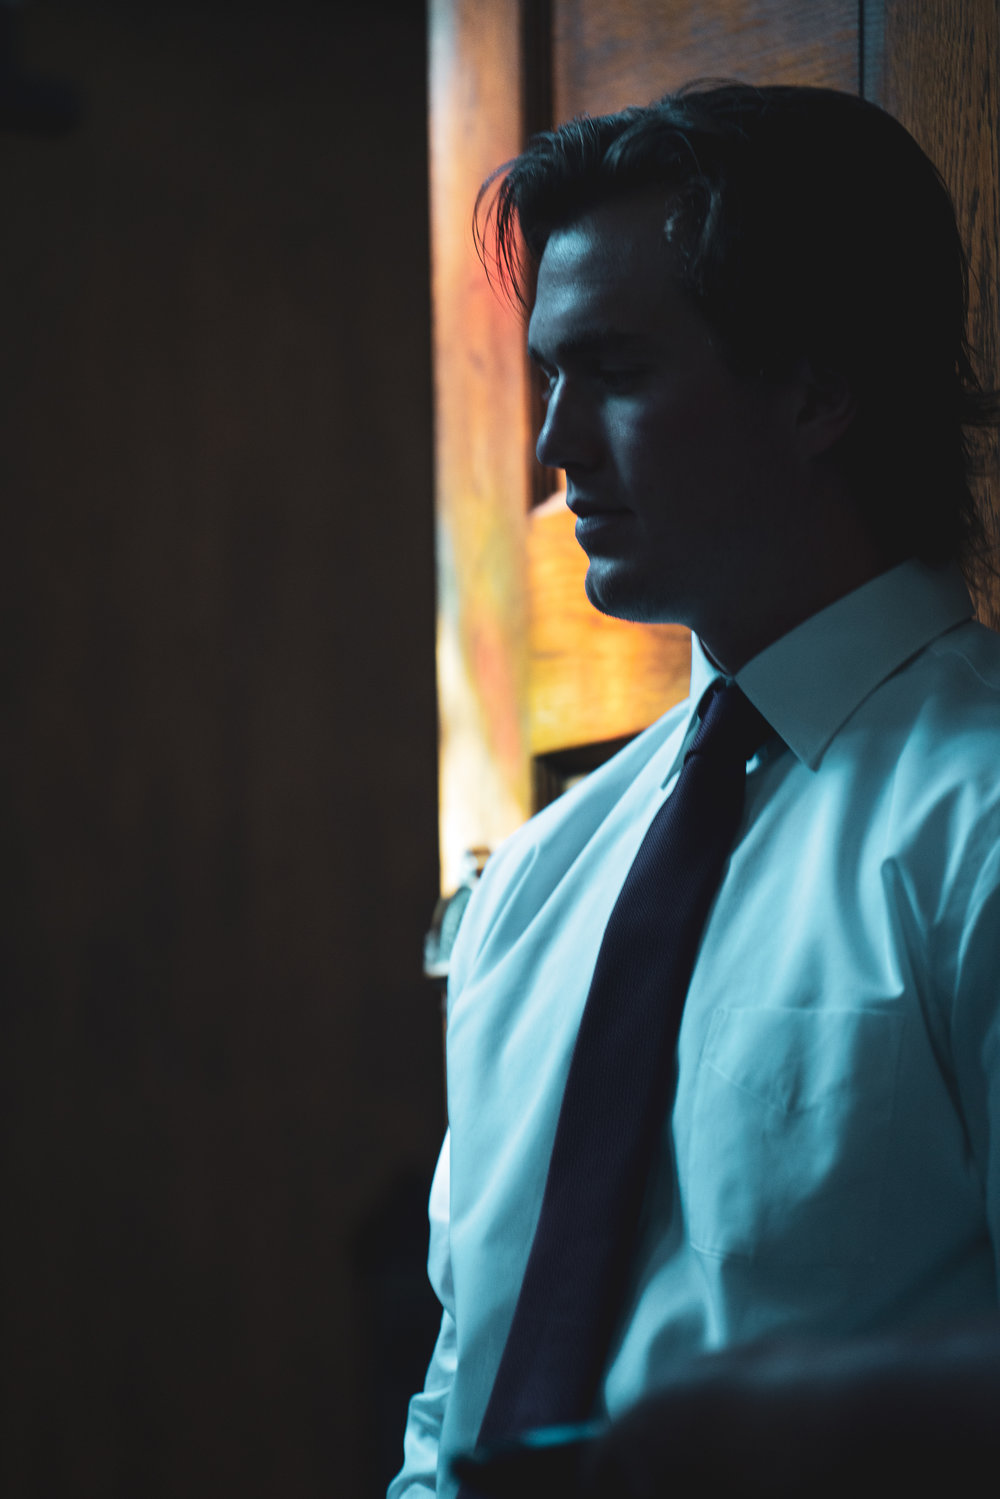 Groomsman photographed in the shadows of a Montana church.